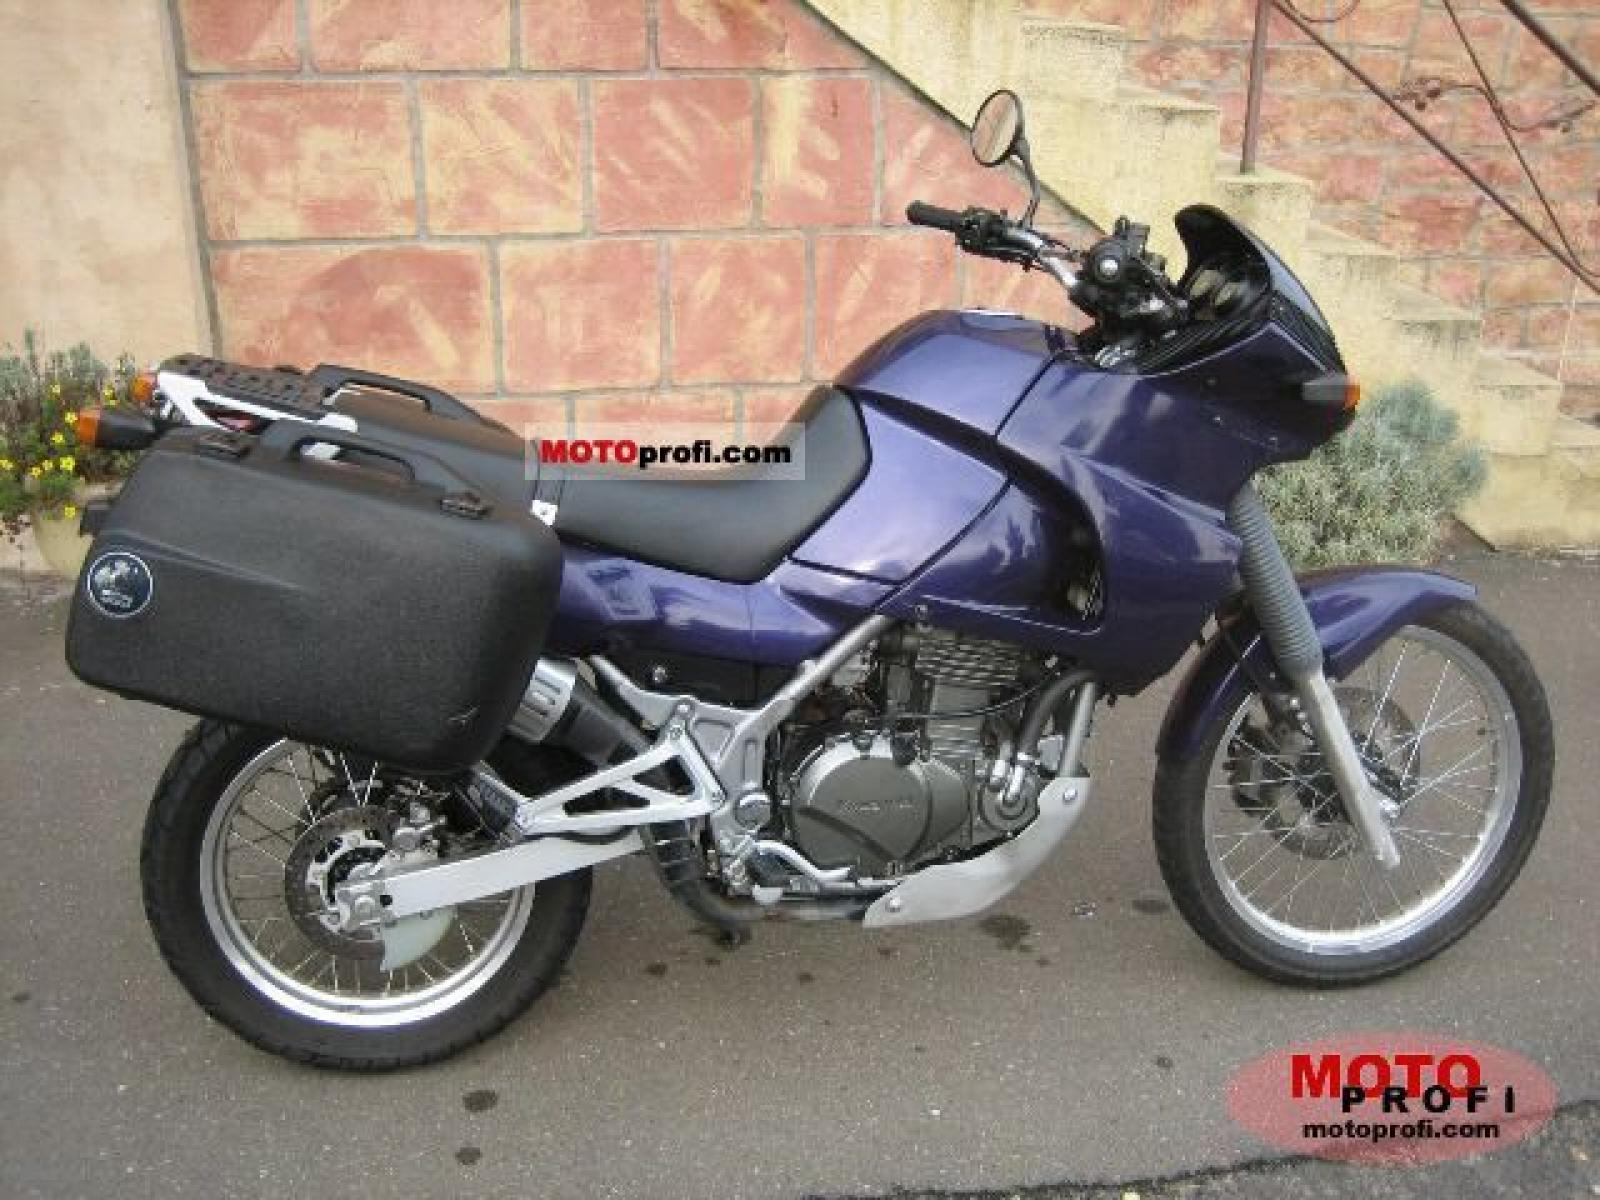 BMW R65 (reduced effect) 1991 images #77444